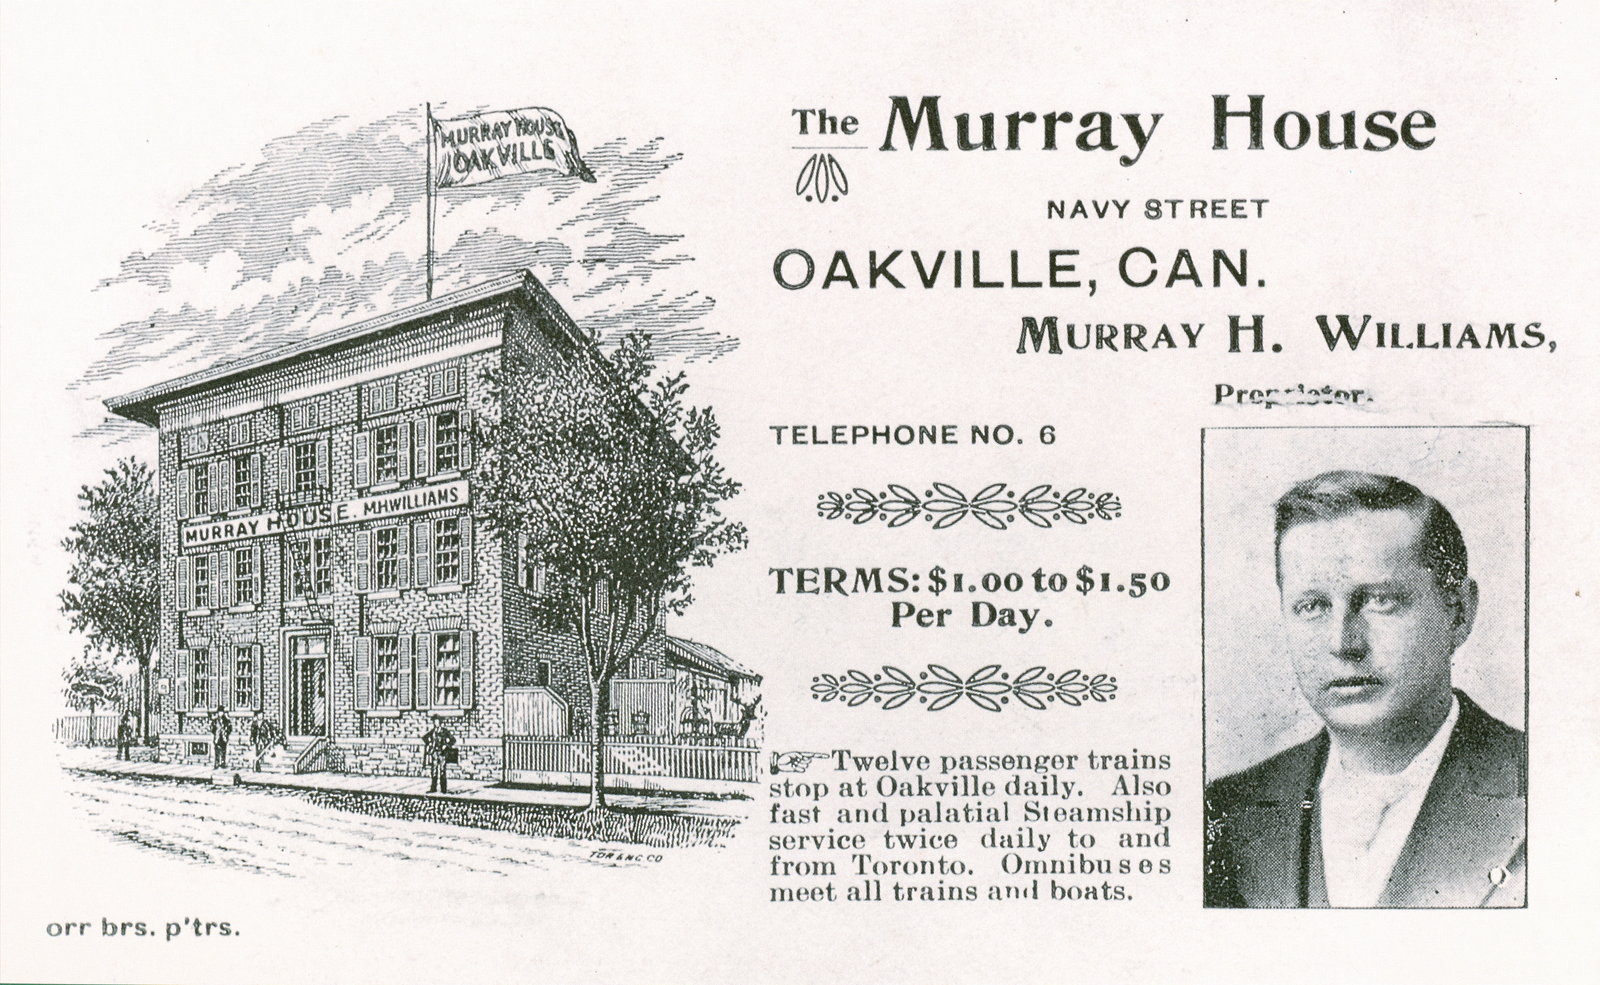 Murray House Hotel Advertisement, early 1900s